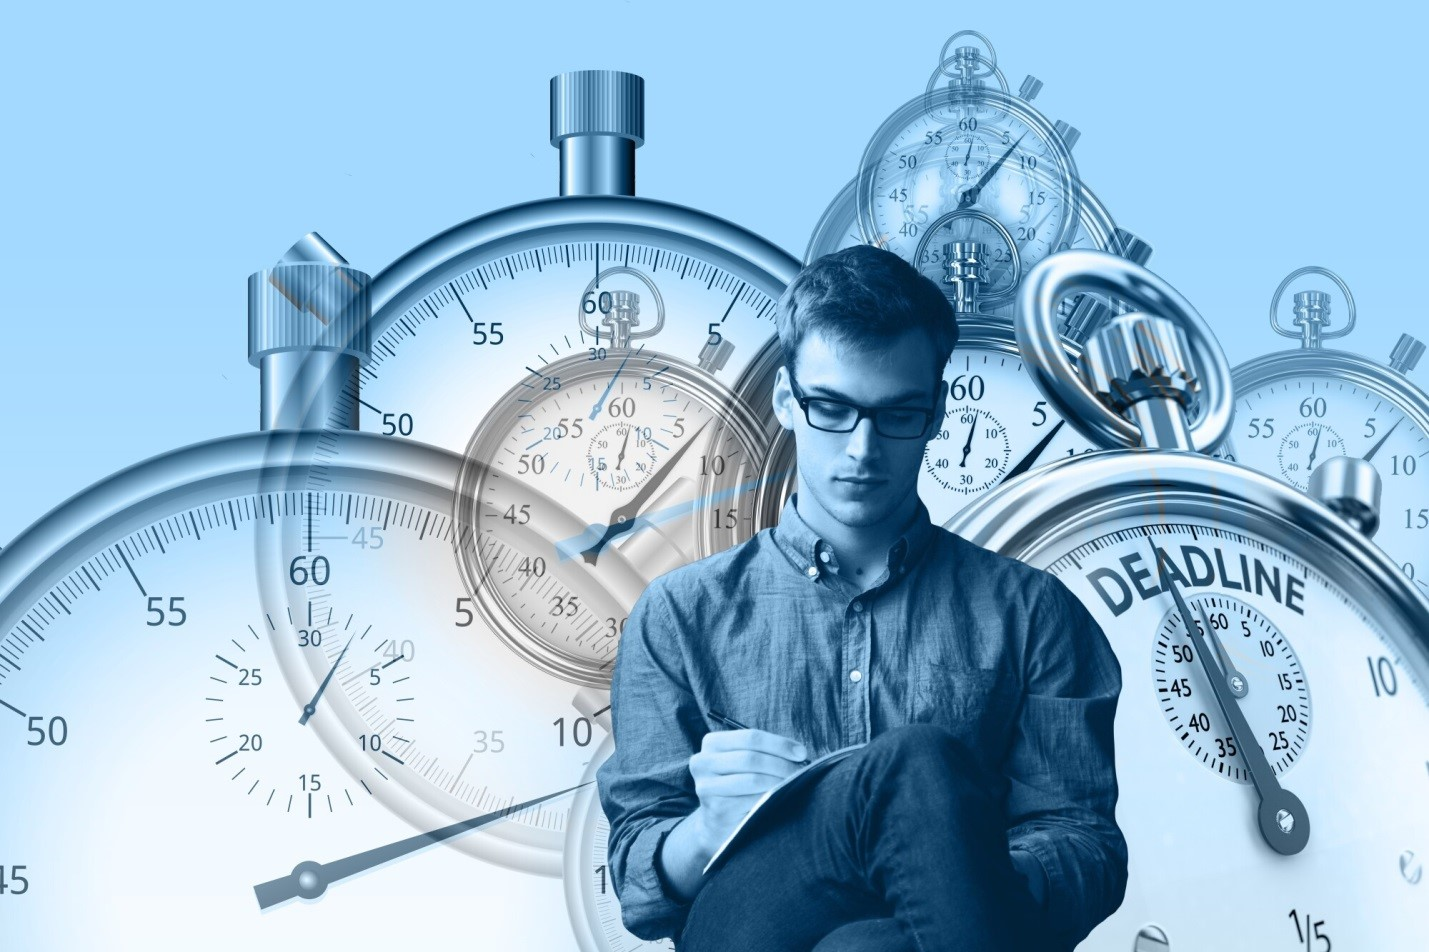 7 Key Tips To Increase Efficiency and Boost Personal Productivity